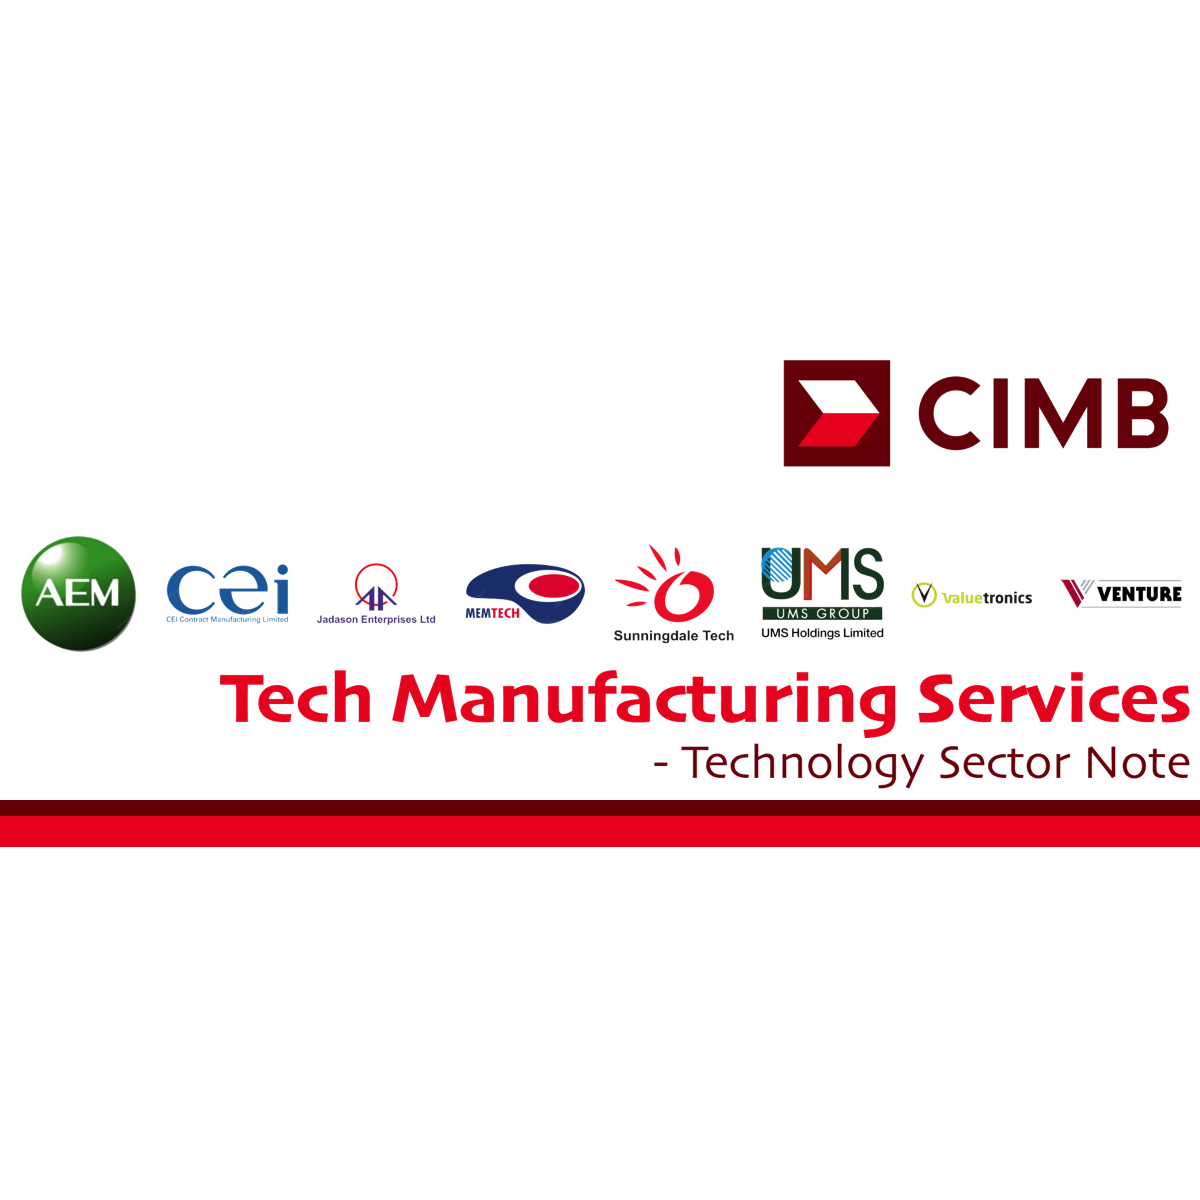 Tech Manufacturing Services - CIMB Research 2017-07-04: Upside Potential Intact For Our Top Picks